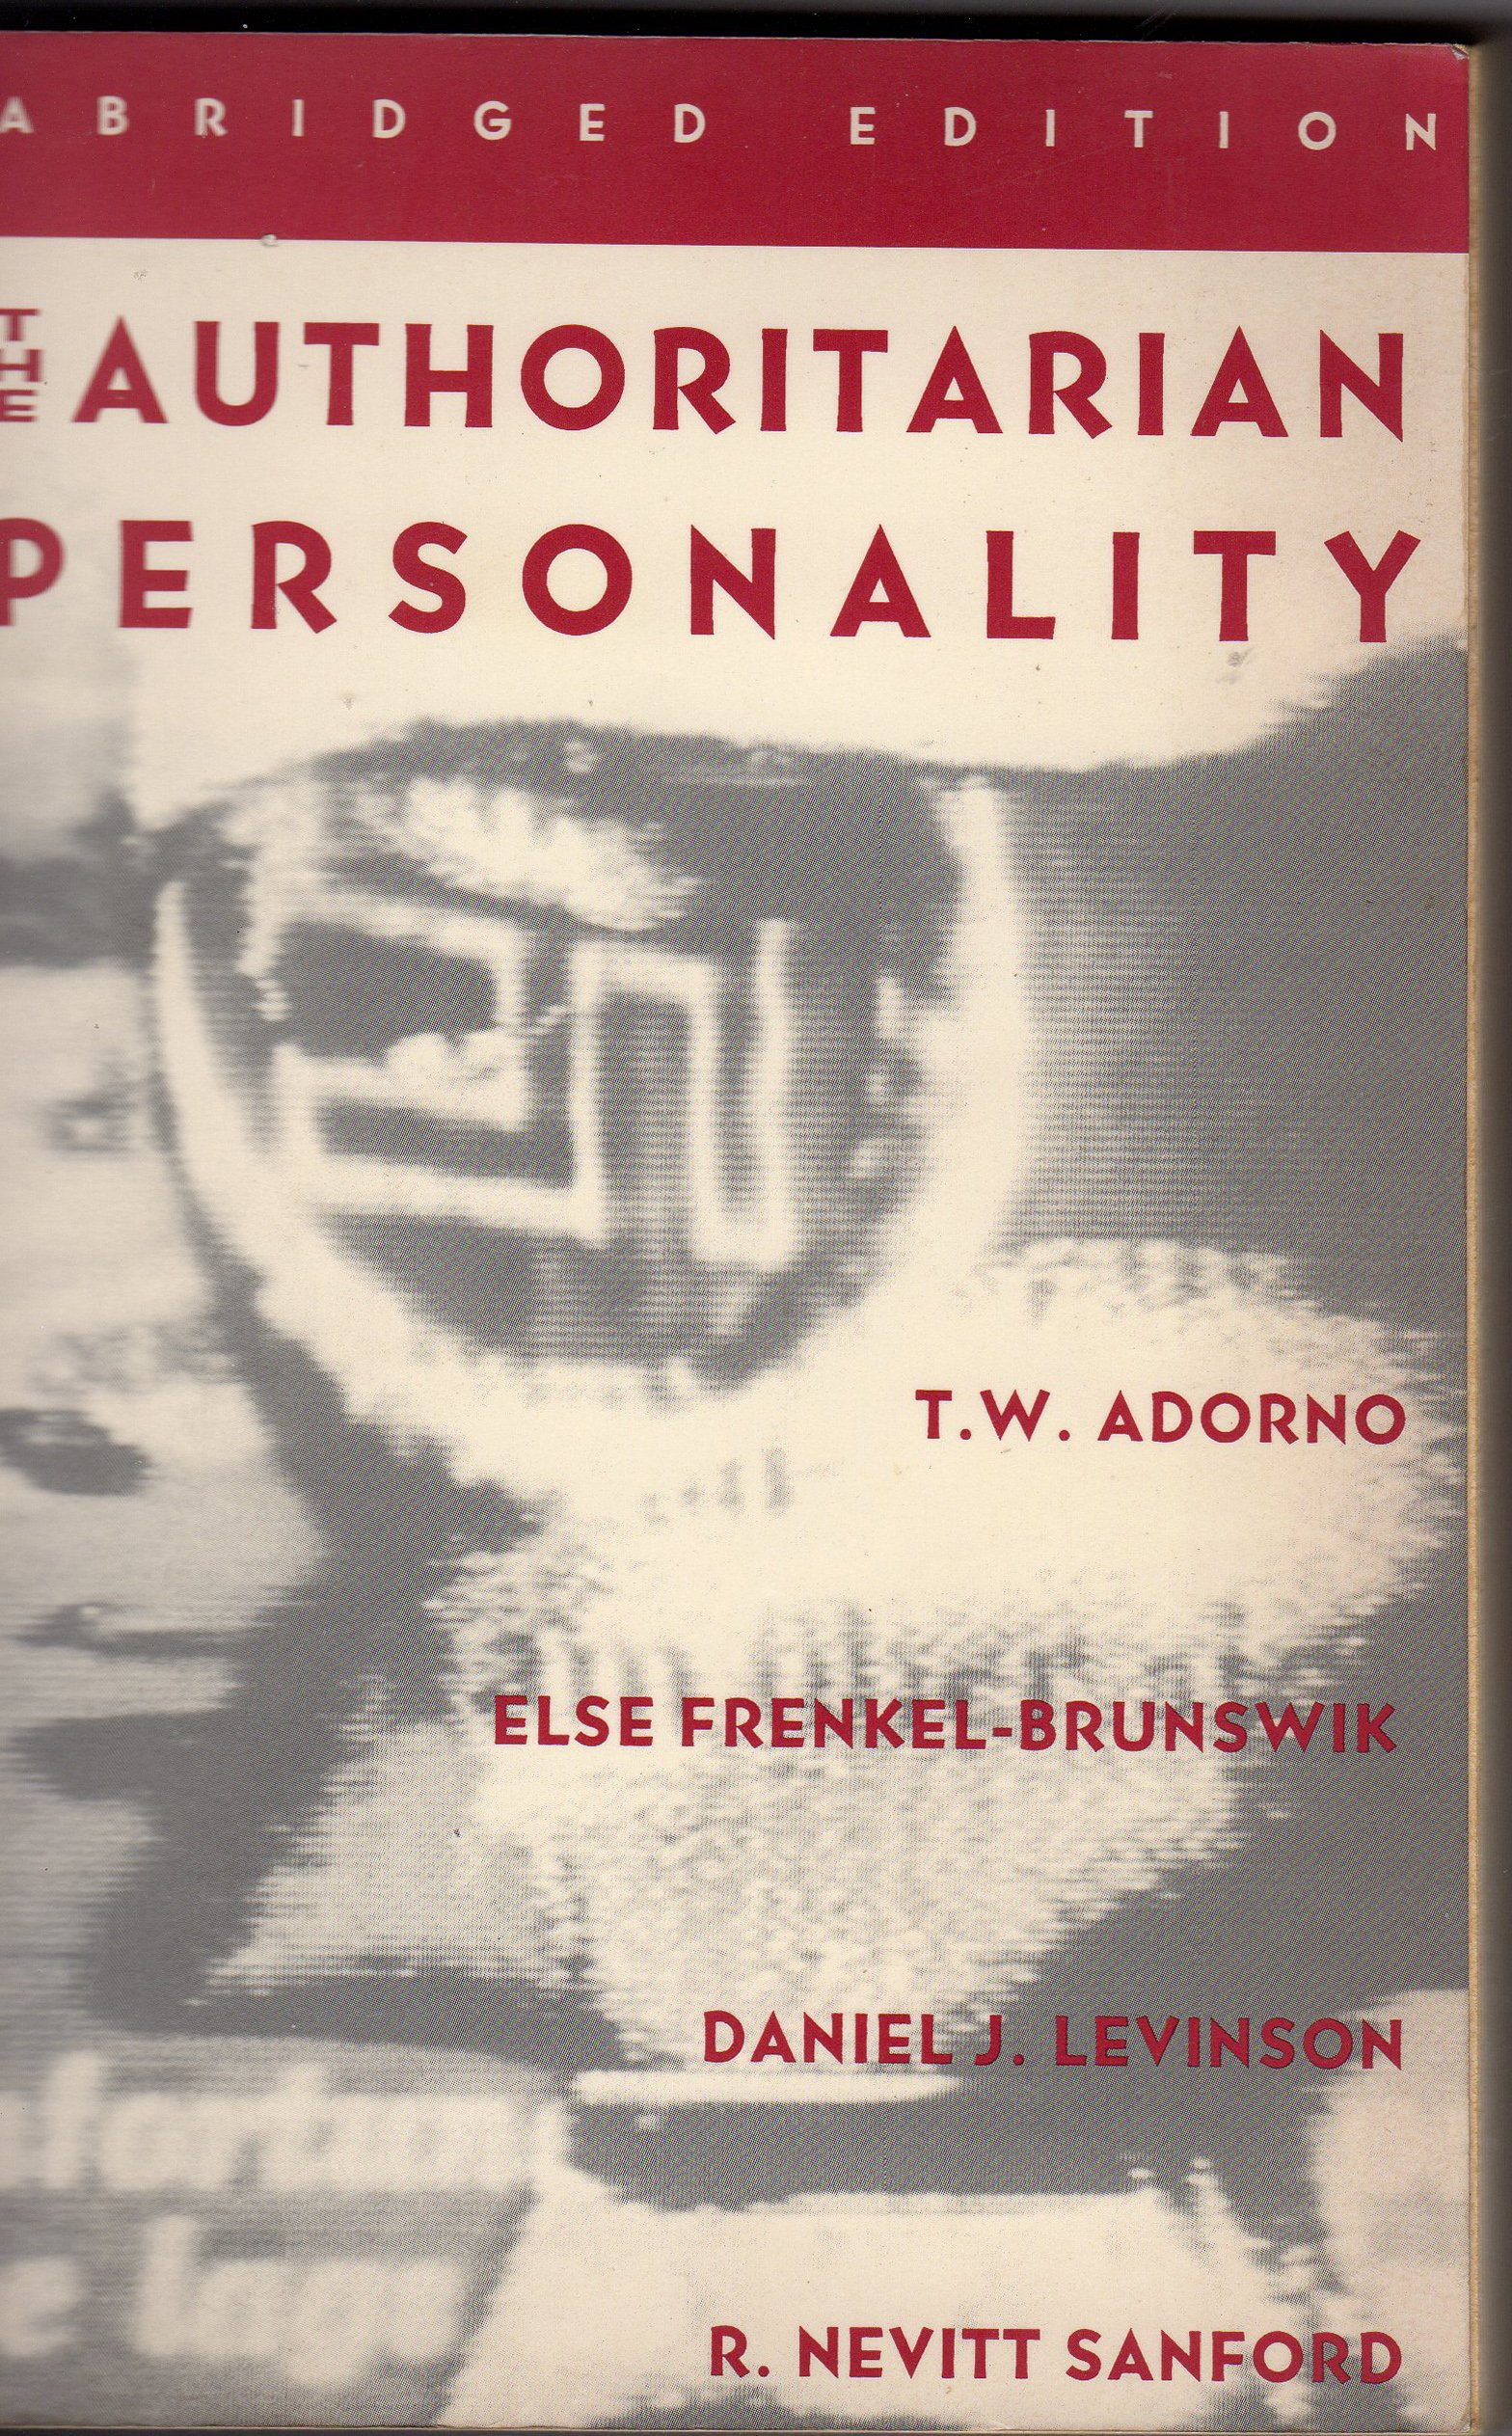 The Authoritarian Personality (Studies in Prejudice): Amazon.de ...